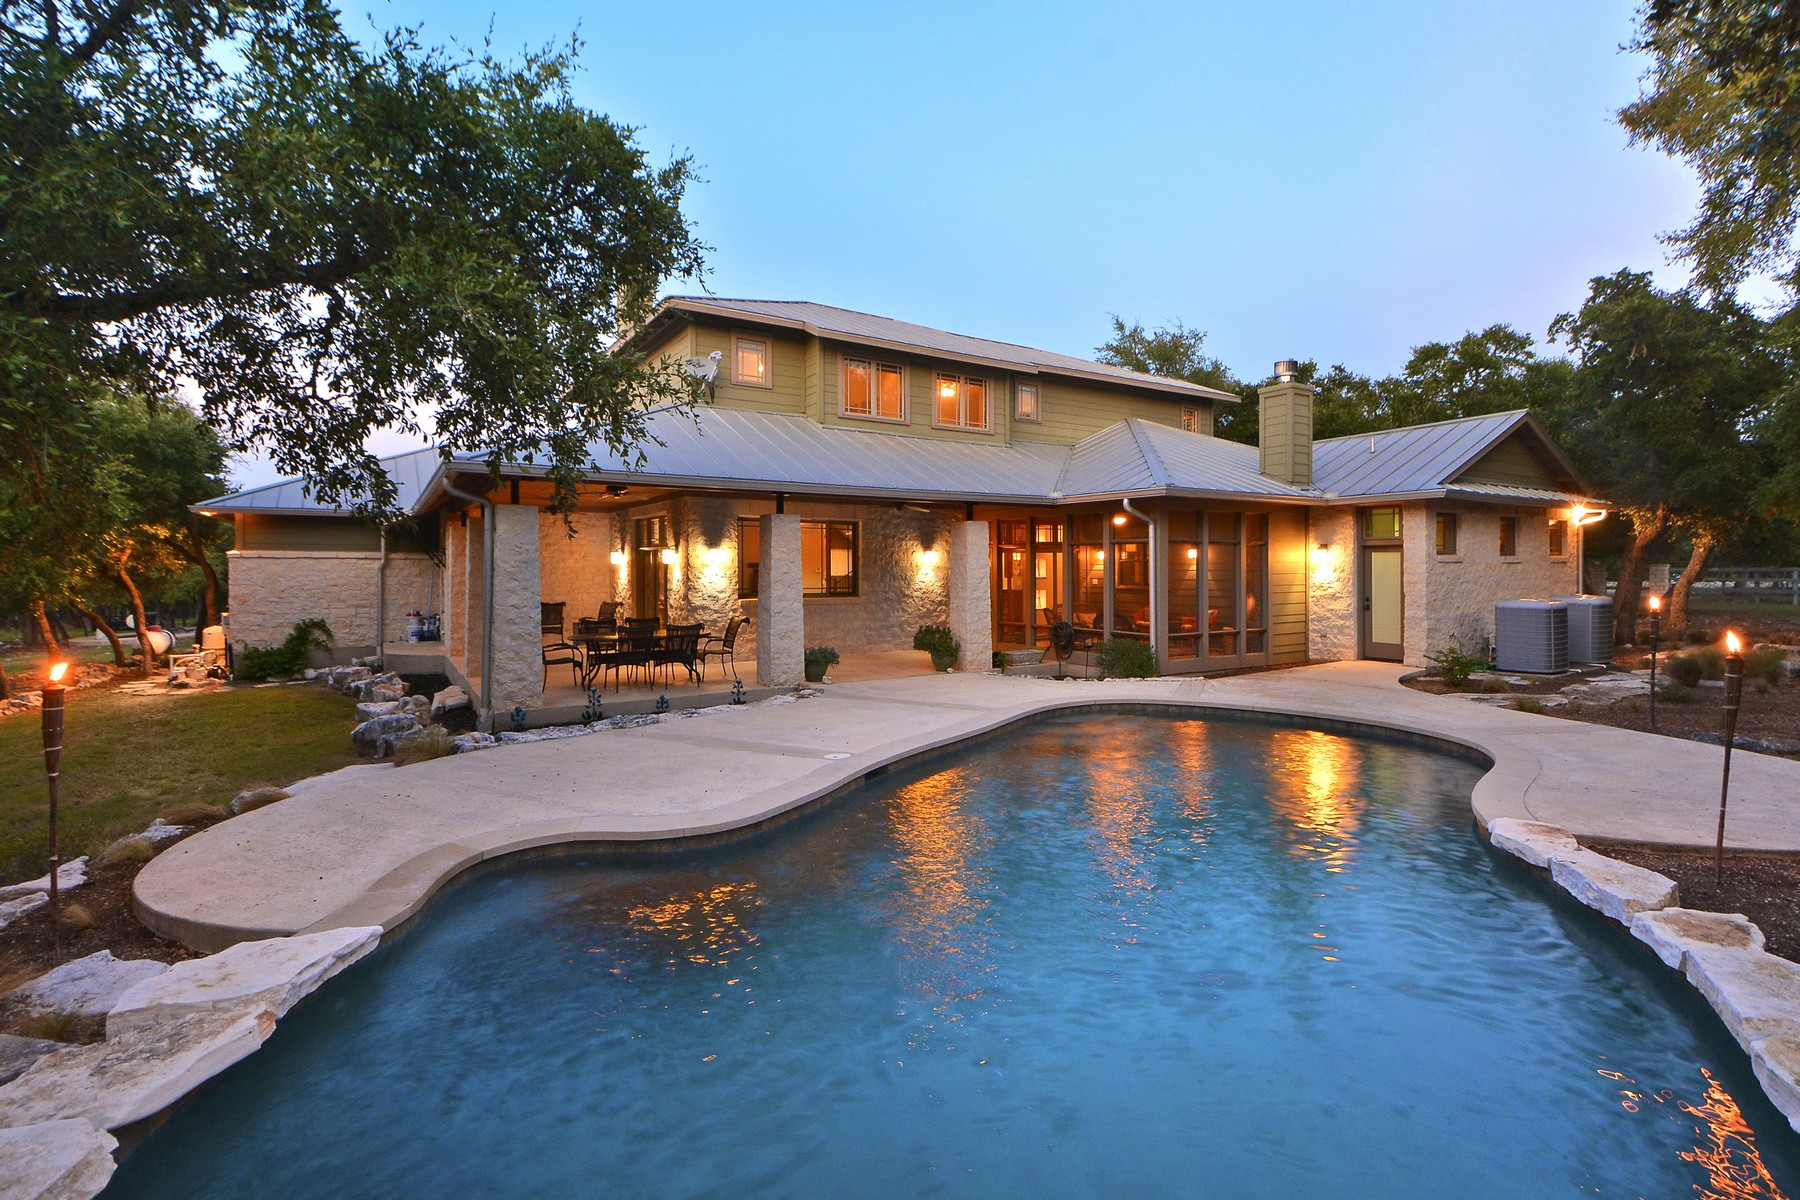 Single Family Home for Sale at Wimberley Wonder 322 Trail Ridge Rd Wimberley, Texas 78676 United States